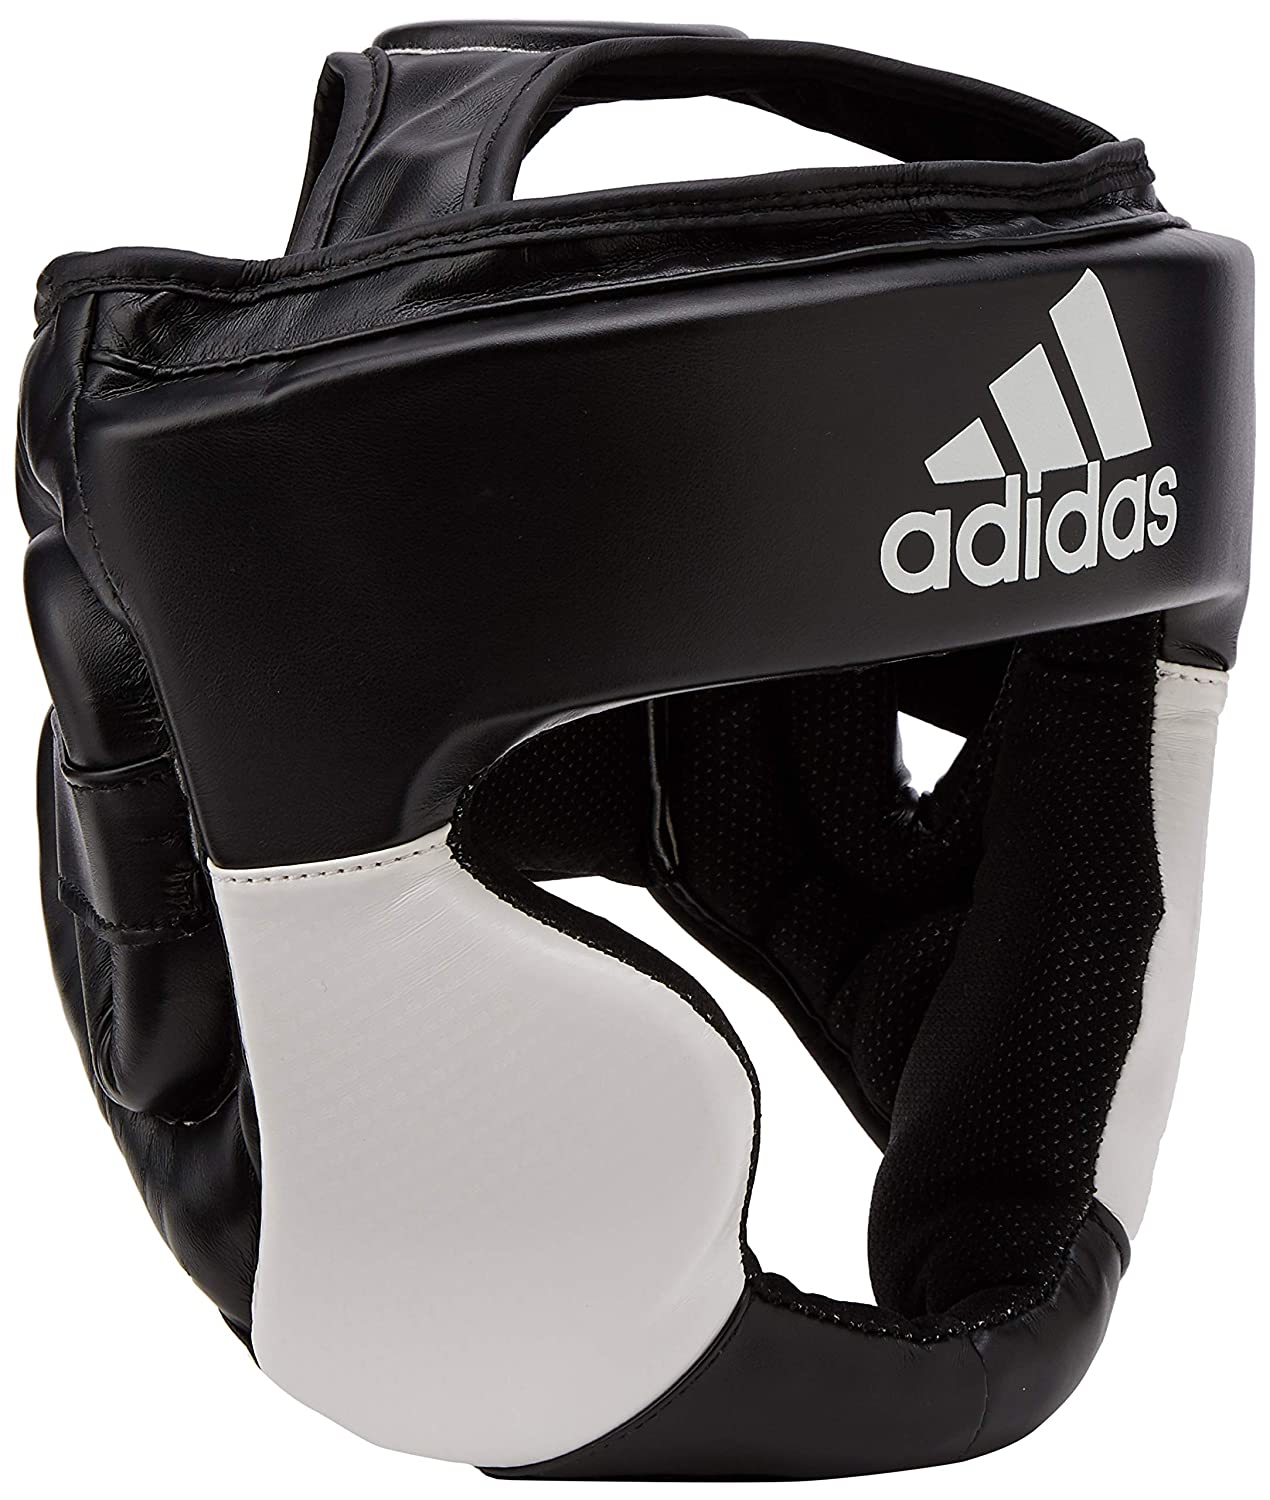 6d9830ebc29f6 Amazon.com : adidas Response Standard Head Guard : Sports & Outdoors